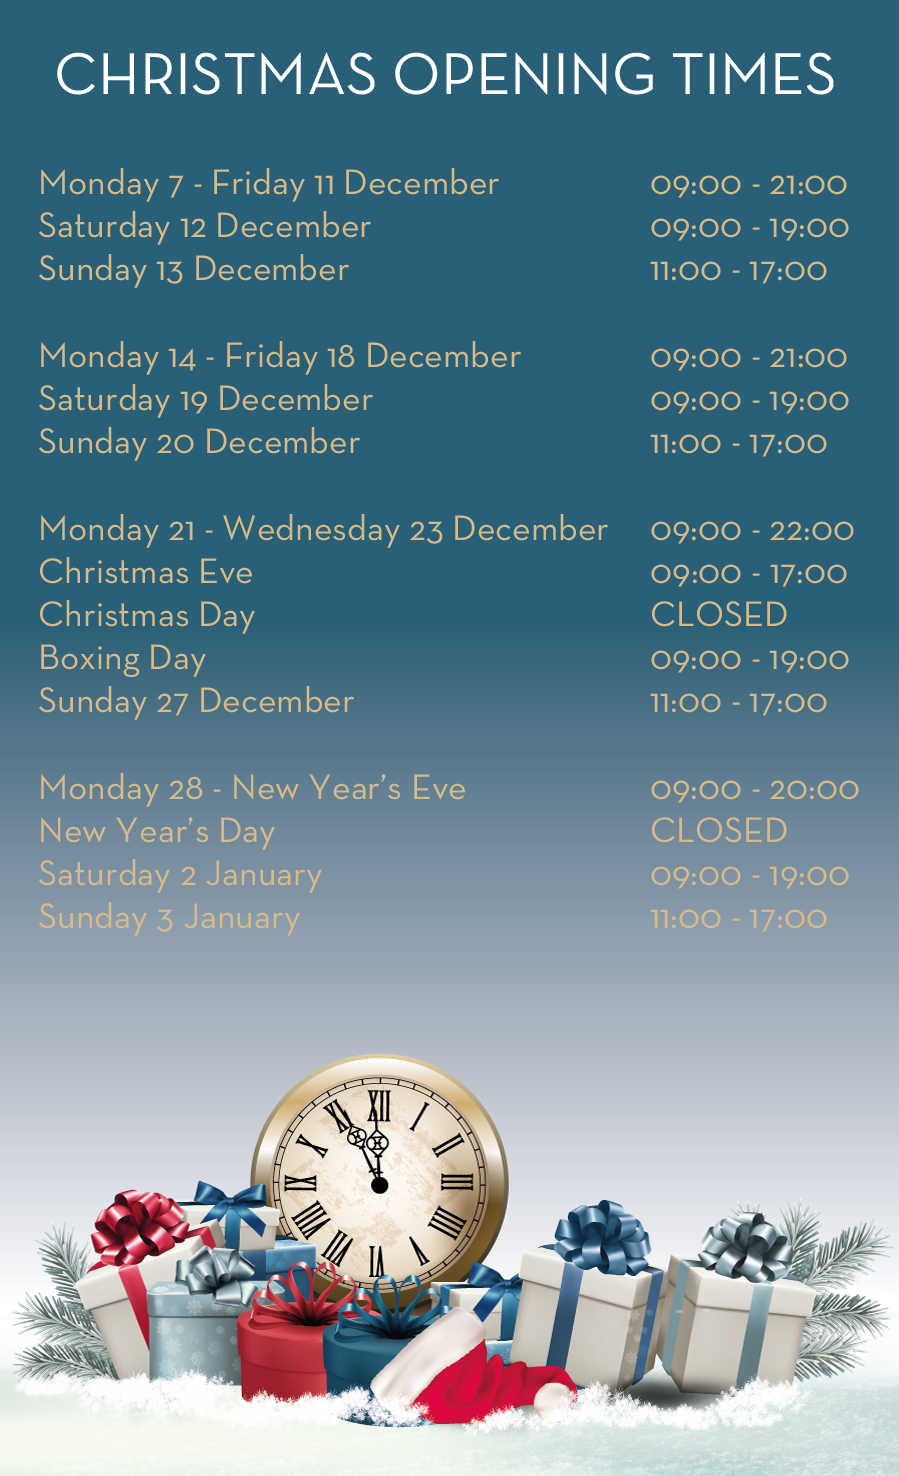 Christmas opening times | Crownpoint Shopping in Denton, Manchester